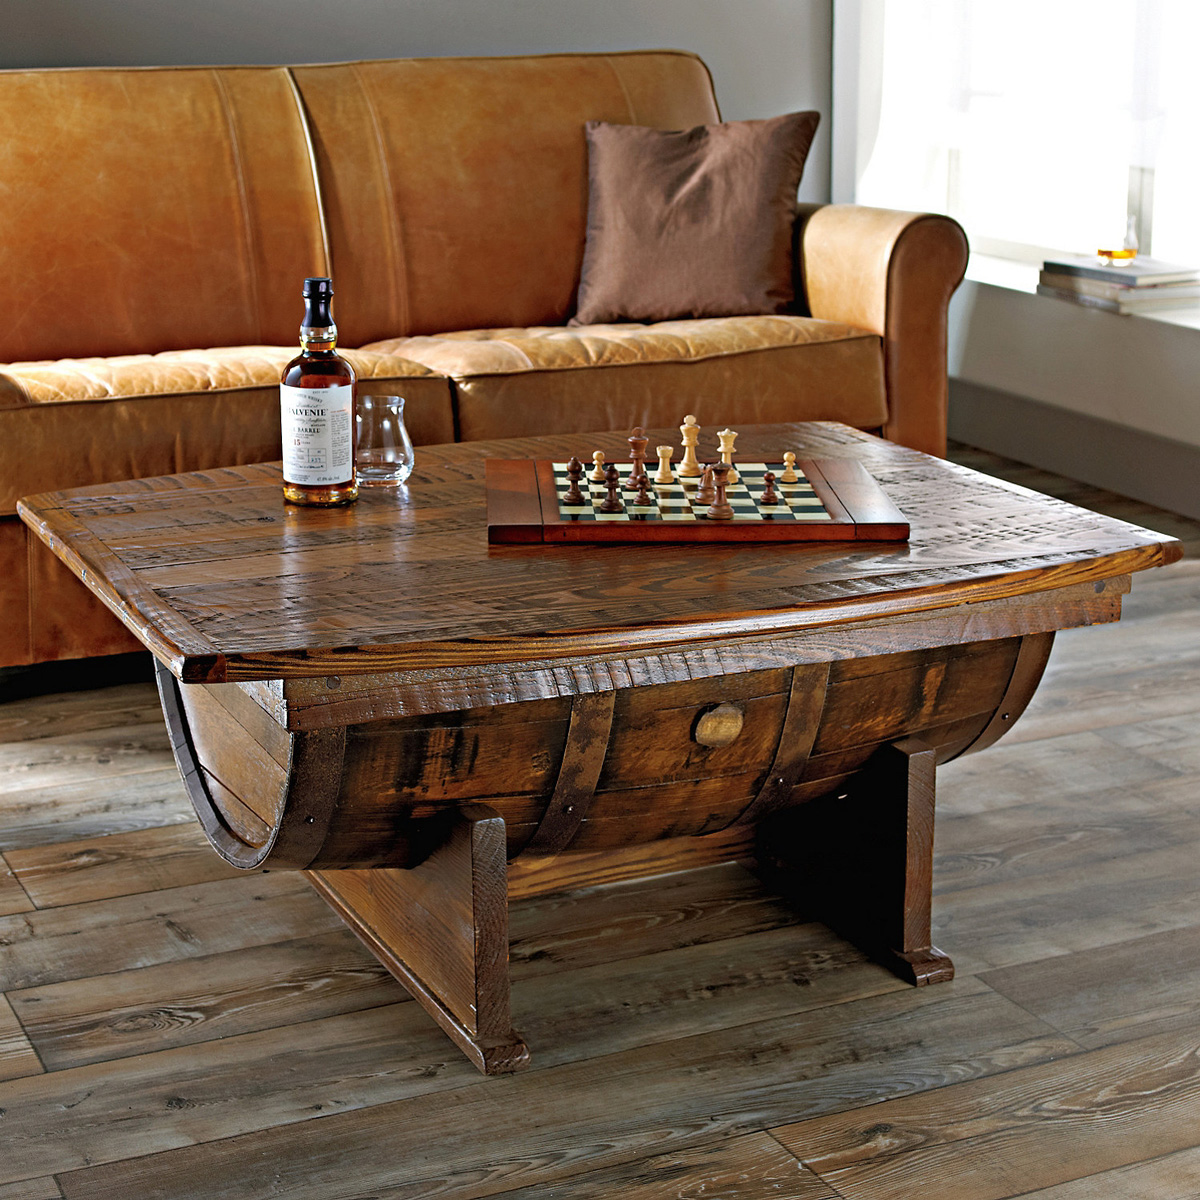 Handmade Vintage Oak Whiskey Barrel Coffee Table  The Green Head -> Table Basse Vintage Jimi